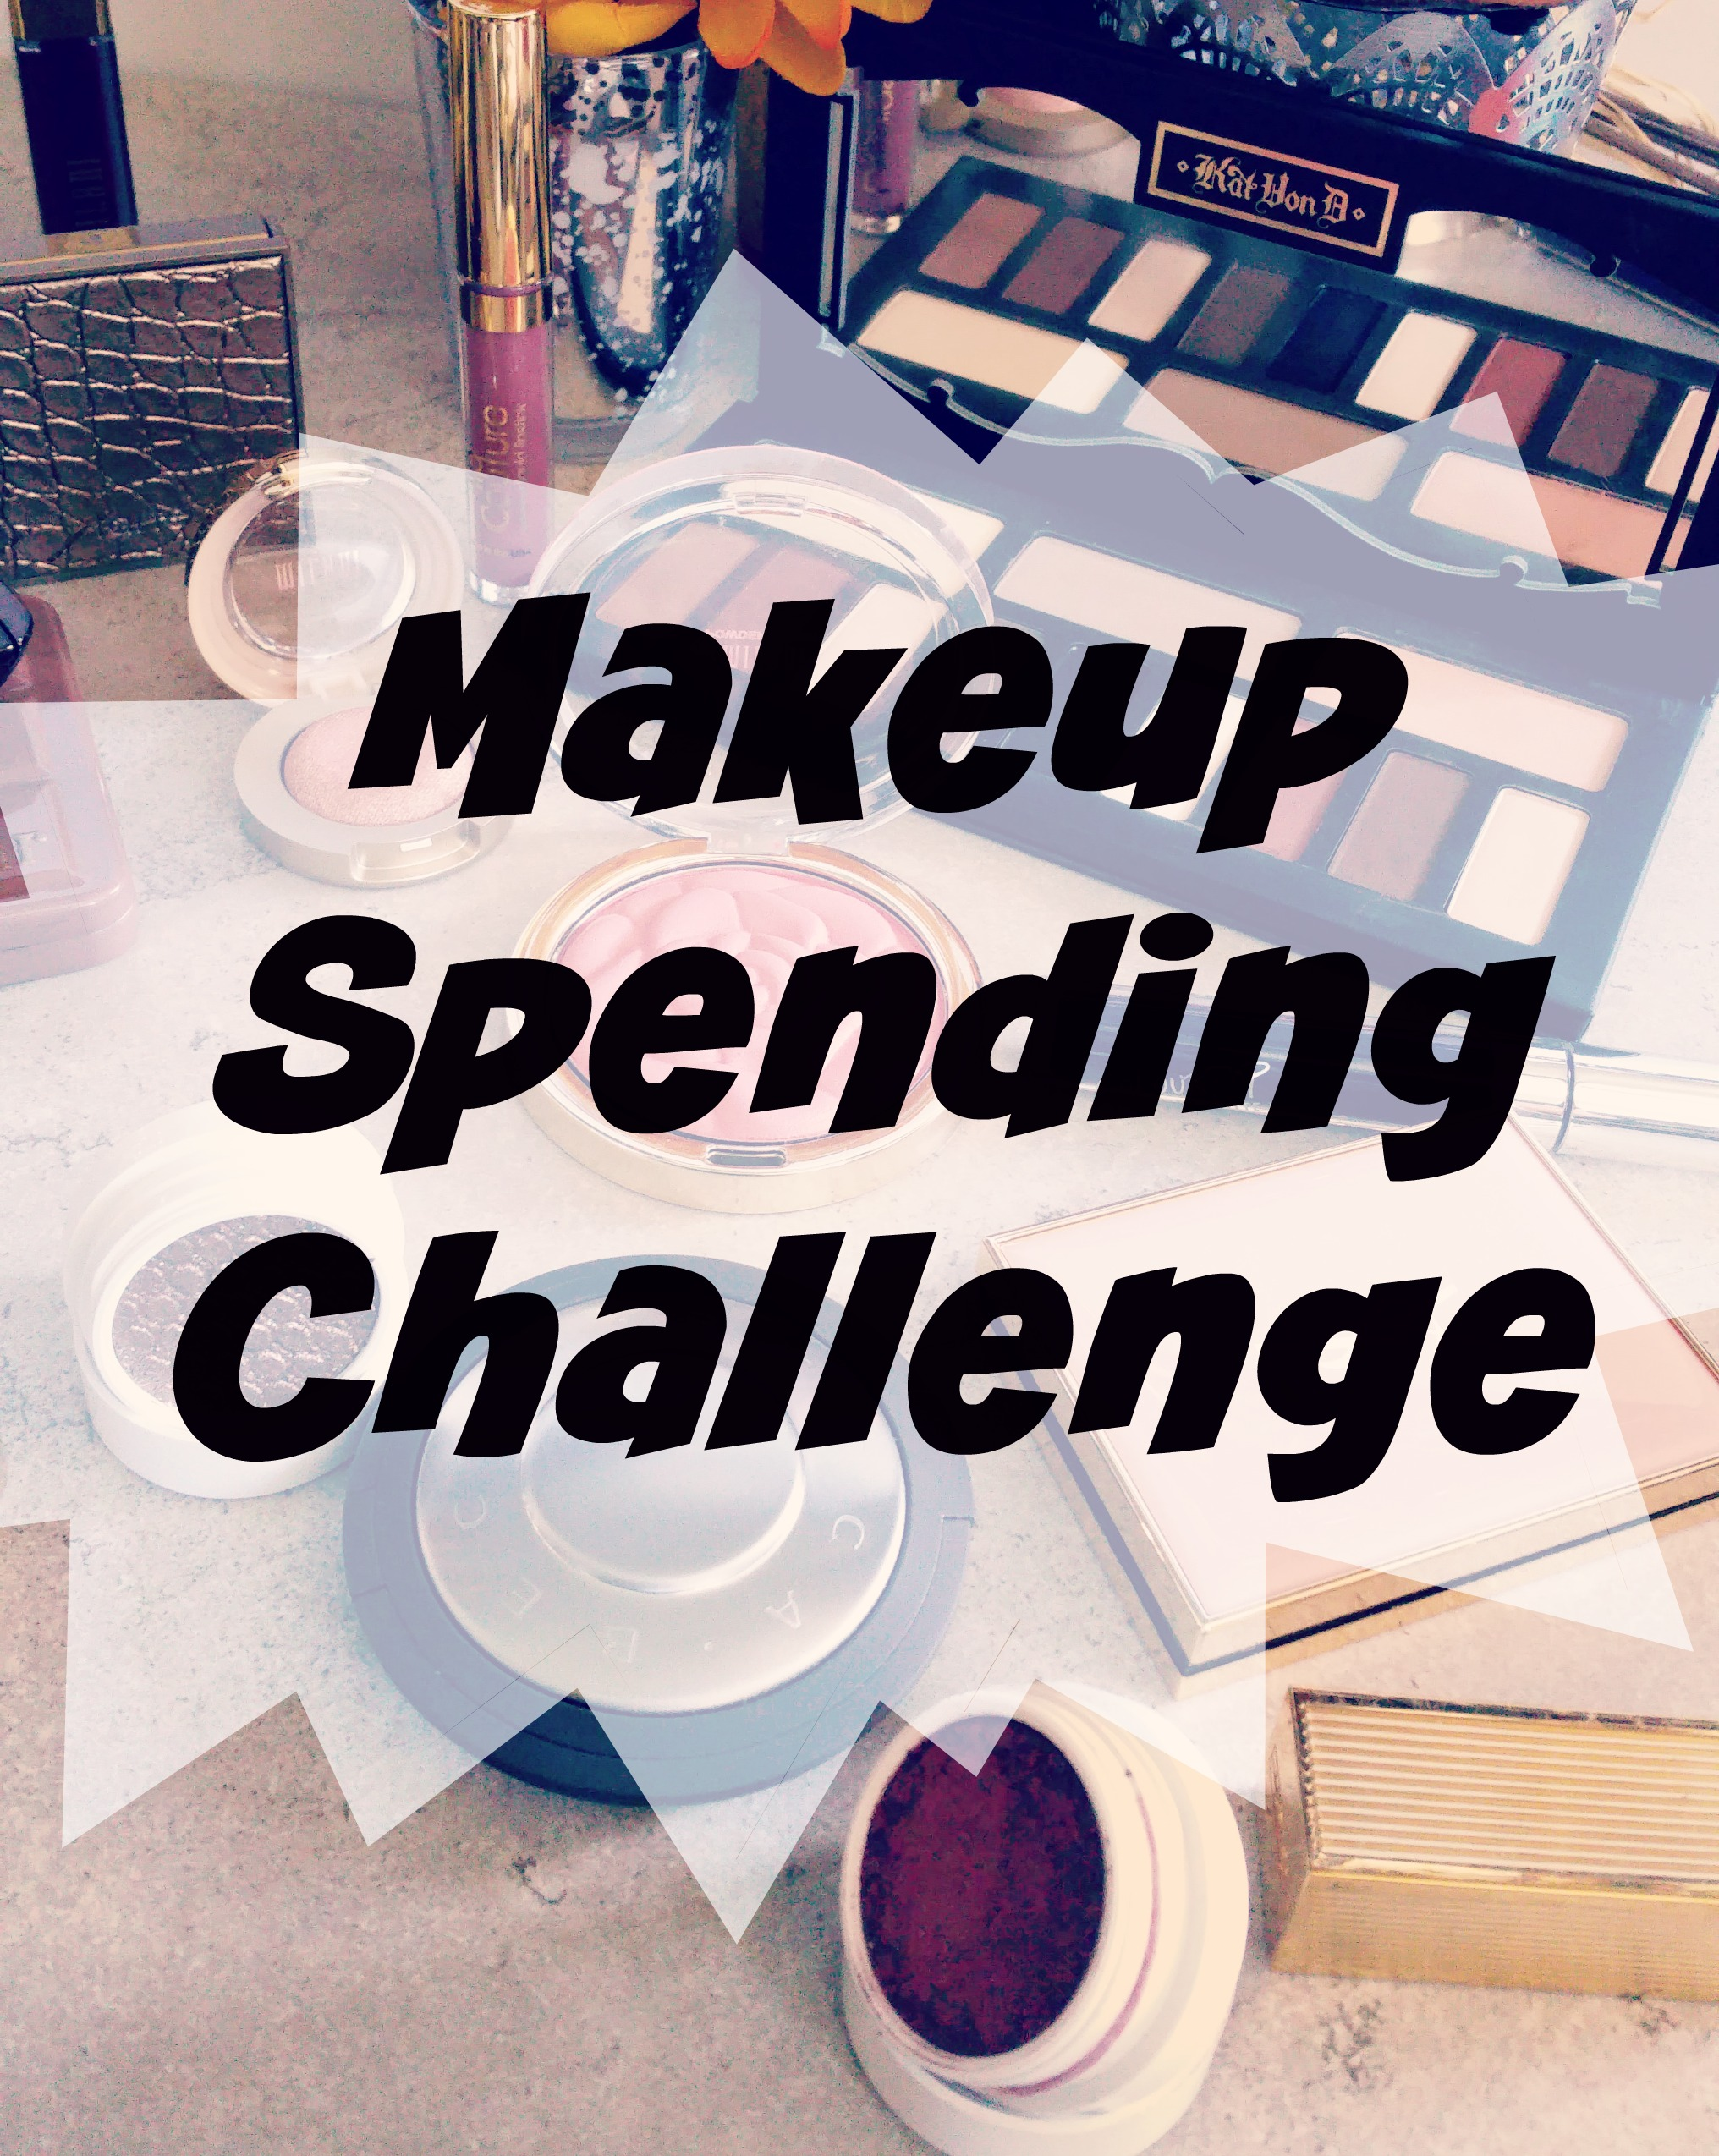 Makeup Spending Challenge - The Dreaded No Buy, no spend, makeup haul,